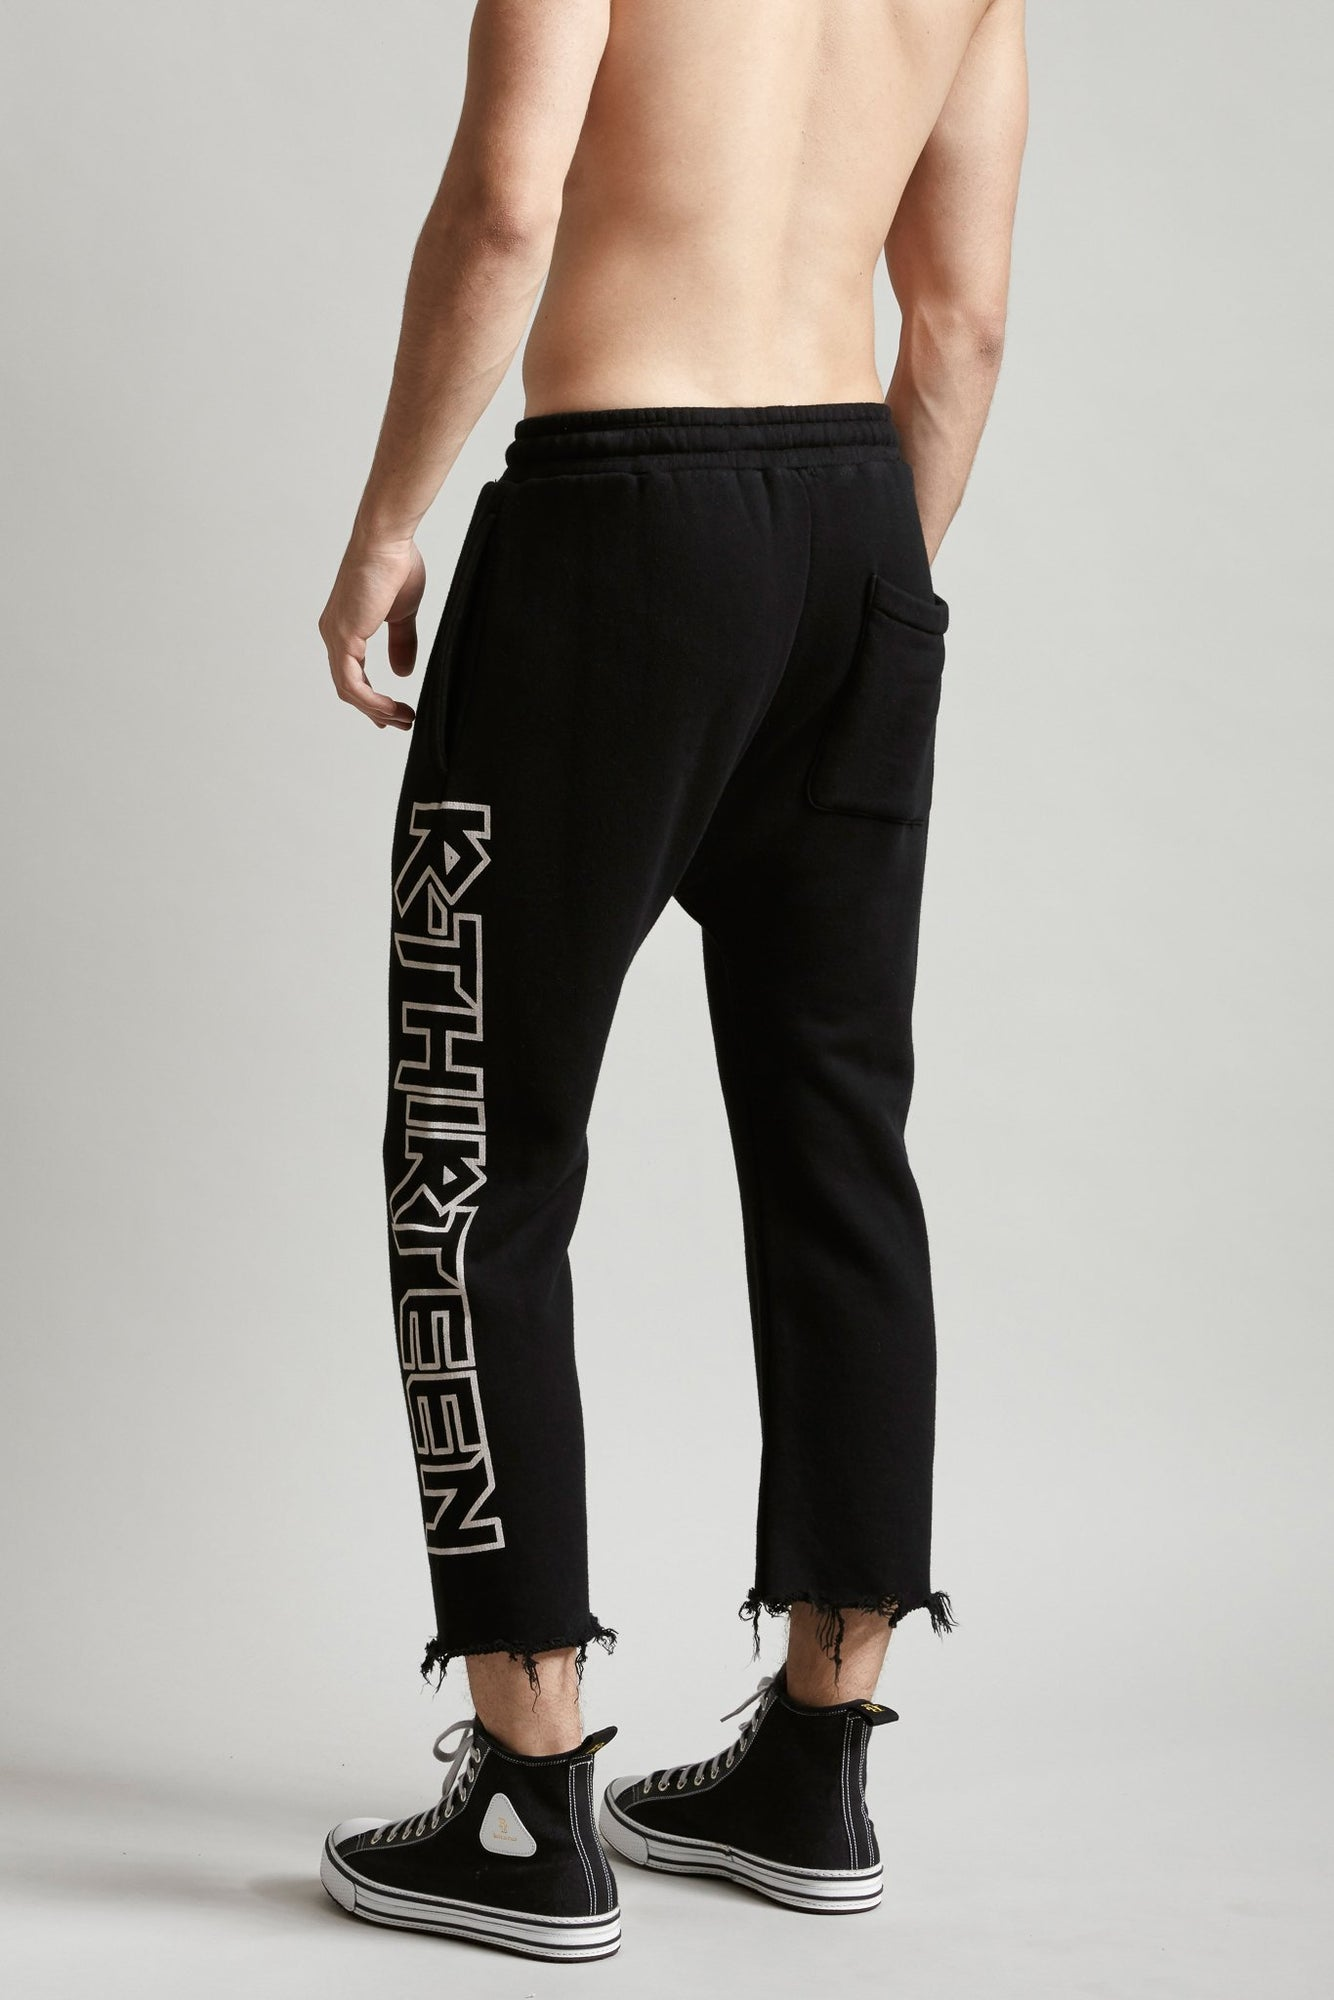 RTHIRTEEN Sweatpants